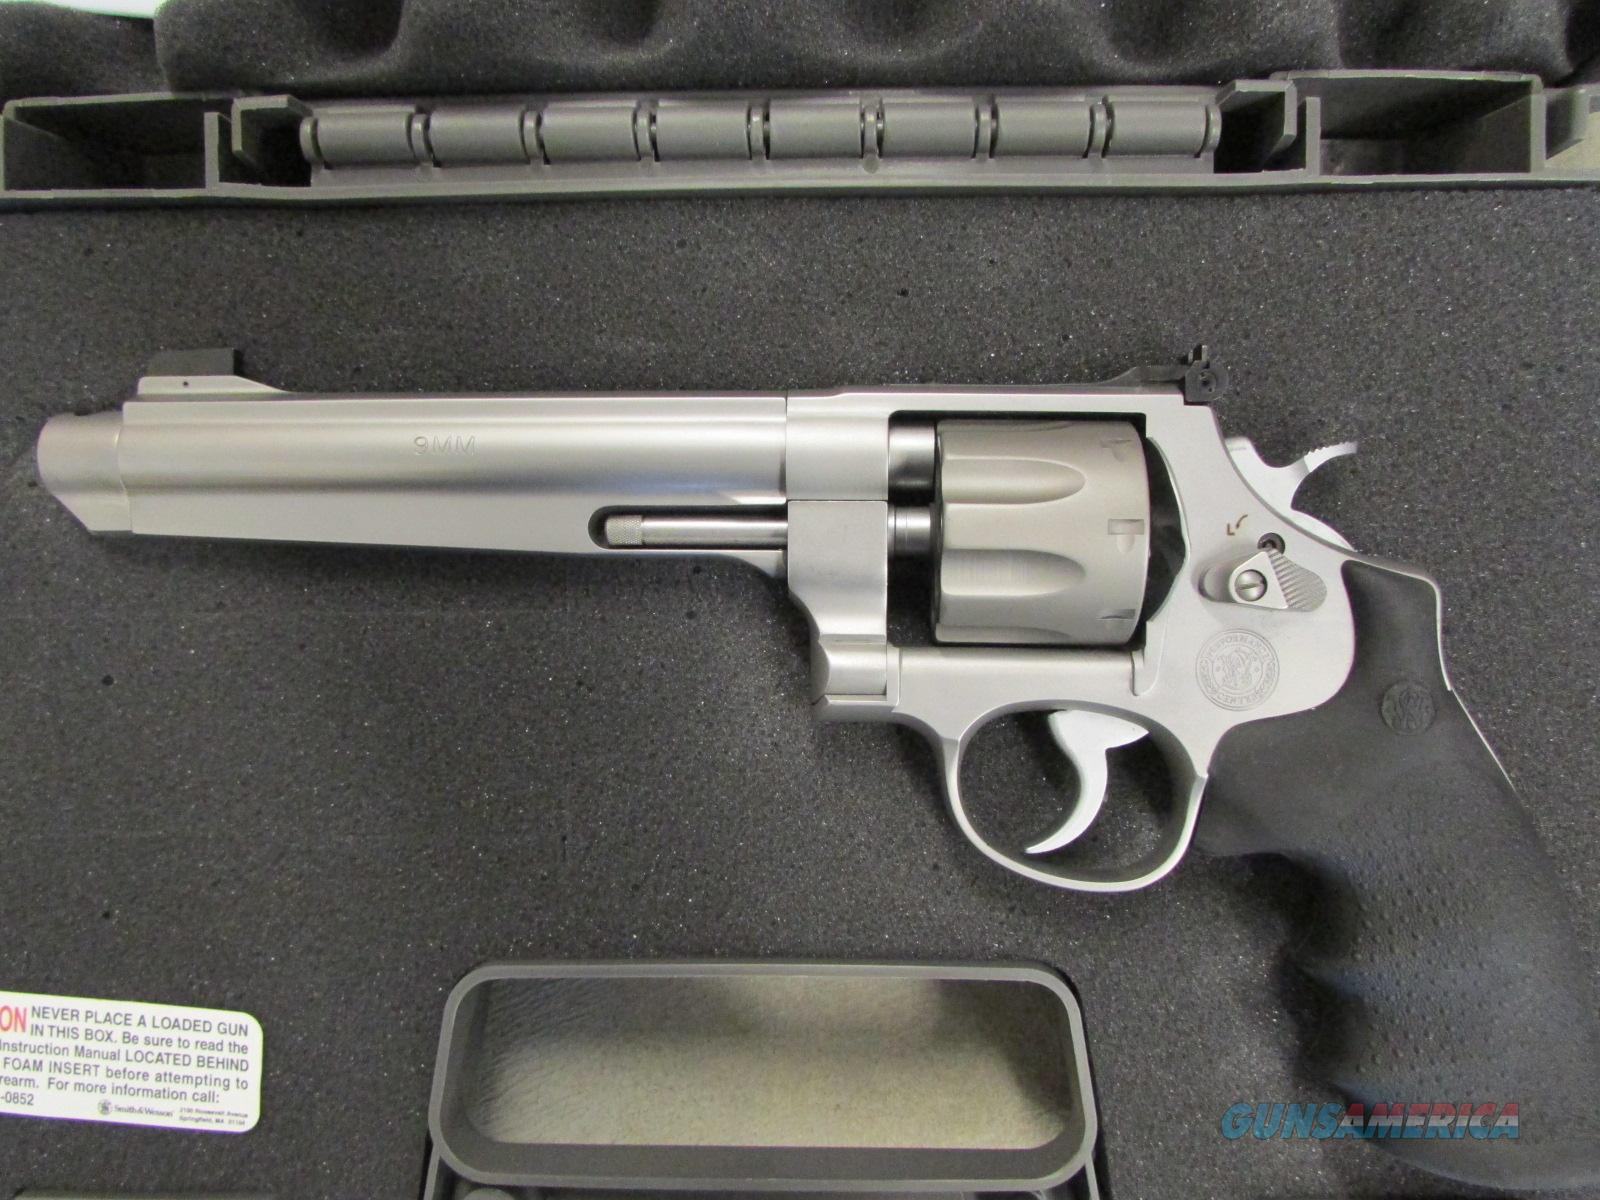 Smith & Wesson Model 929 Jerry Miculek Signature Performance Center 9mm  Guns > Pistols > Smith & Wesson Revolvers > Performance Center